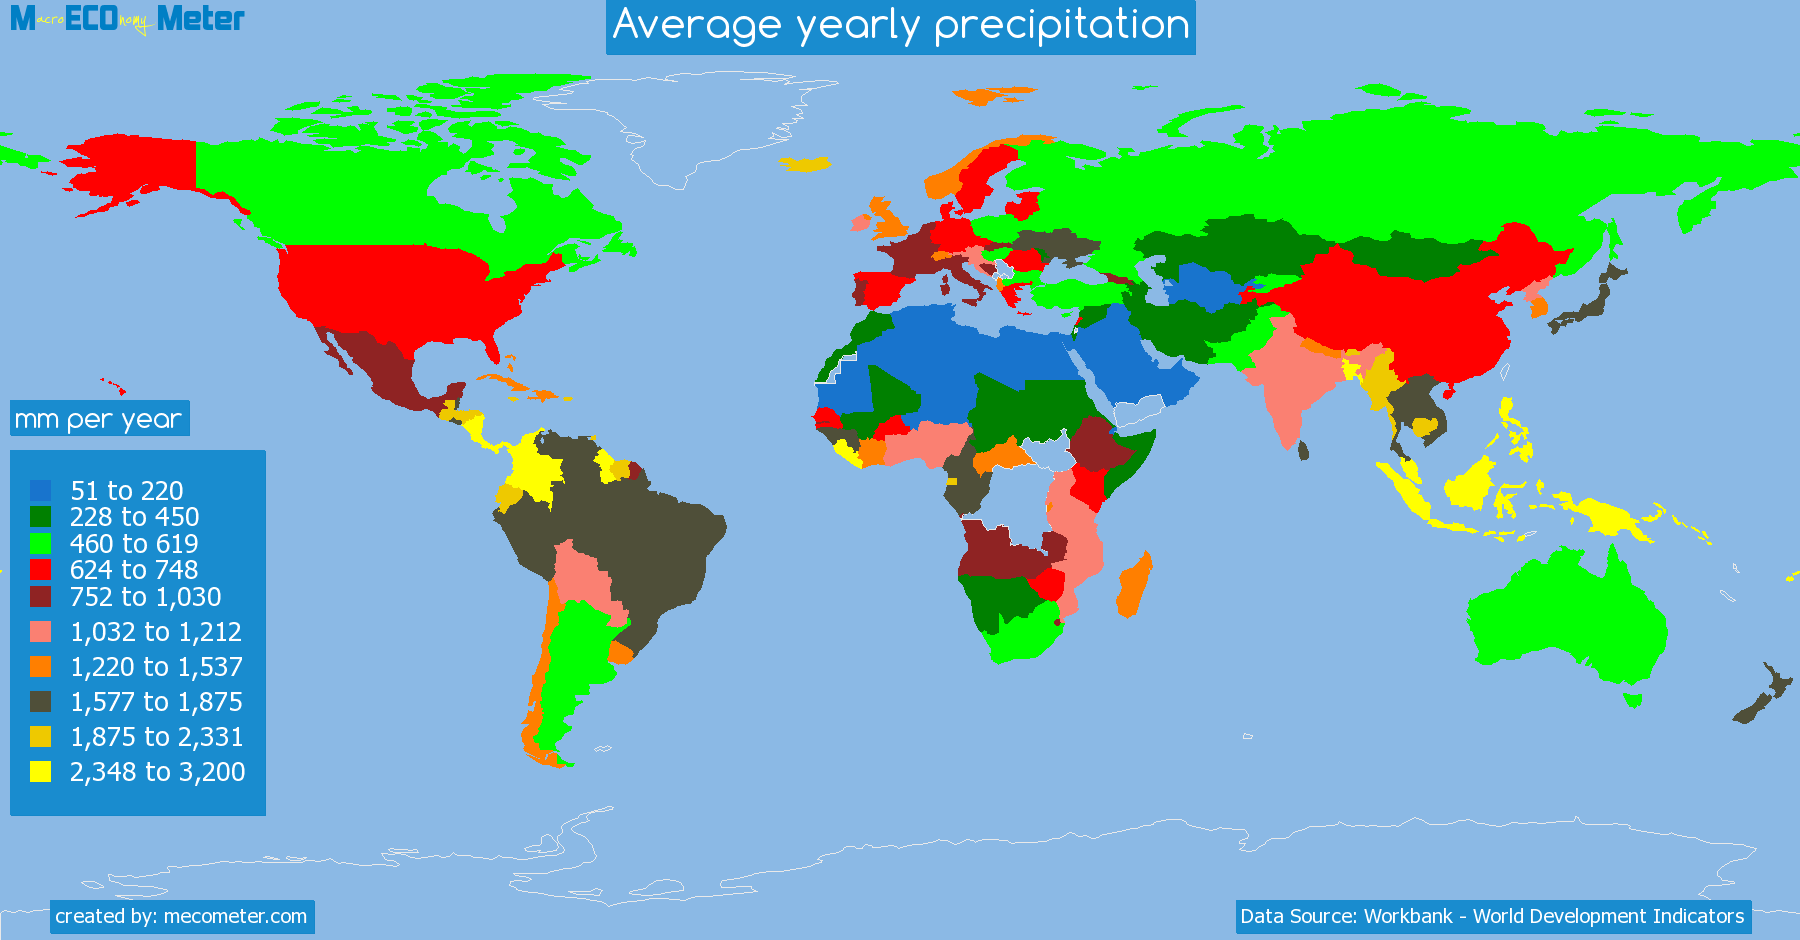 Precipitation World Map.Average Yearly Precipitation By Country